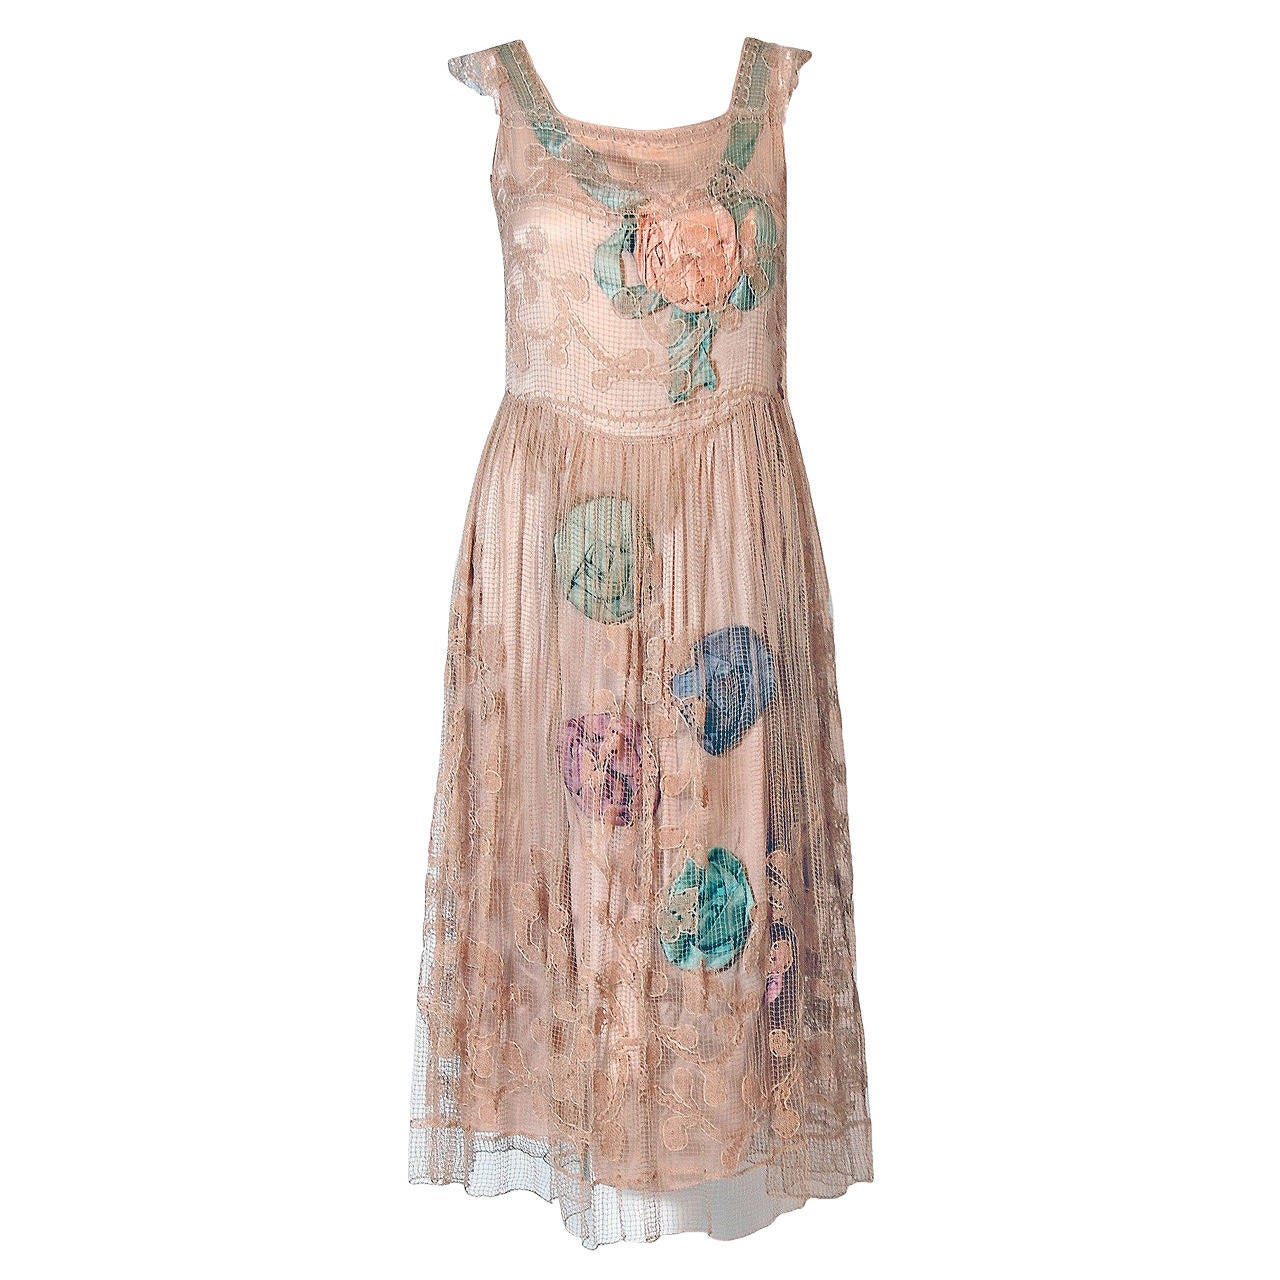 1920's Callot Soeurs Couture Attribute Silk Rosettes Filet-Lace Flapper Dress For Sale